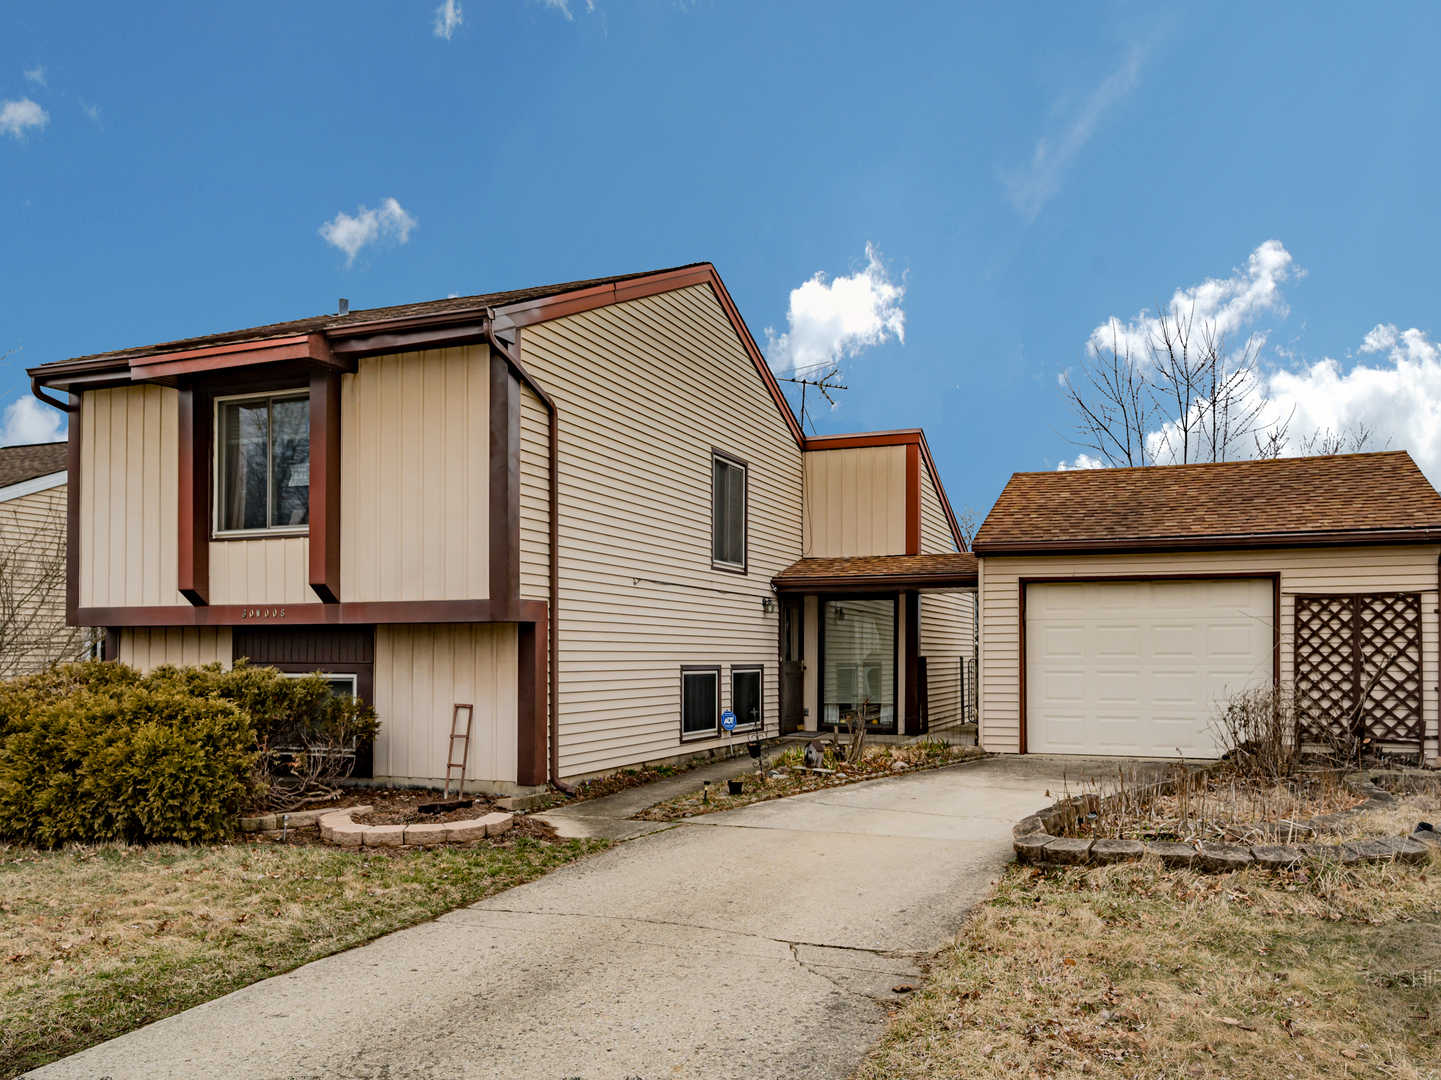 30w008 Danbury ,Warrenville, Illinois 60555